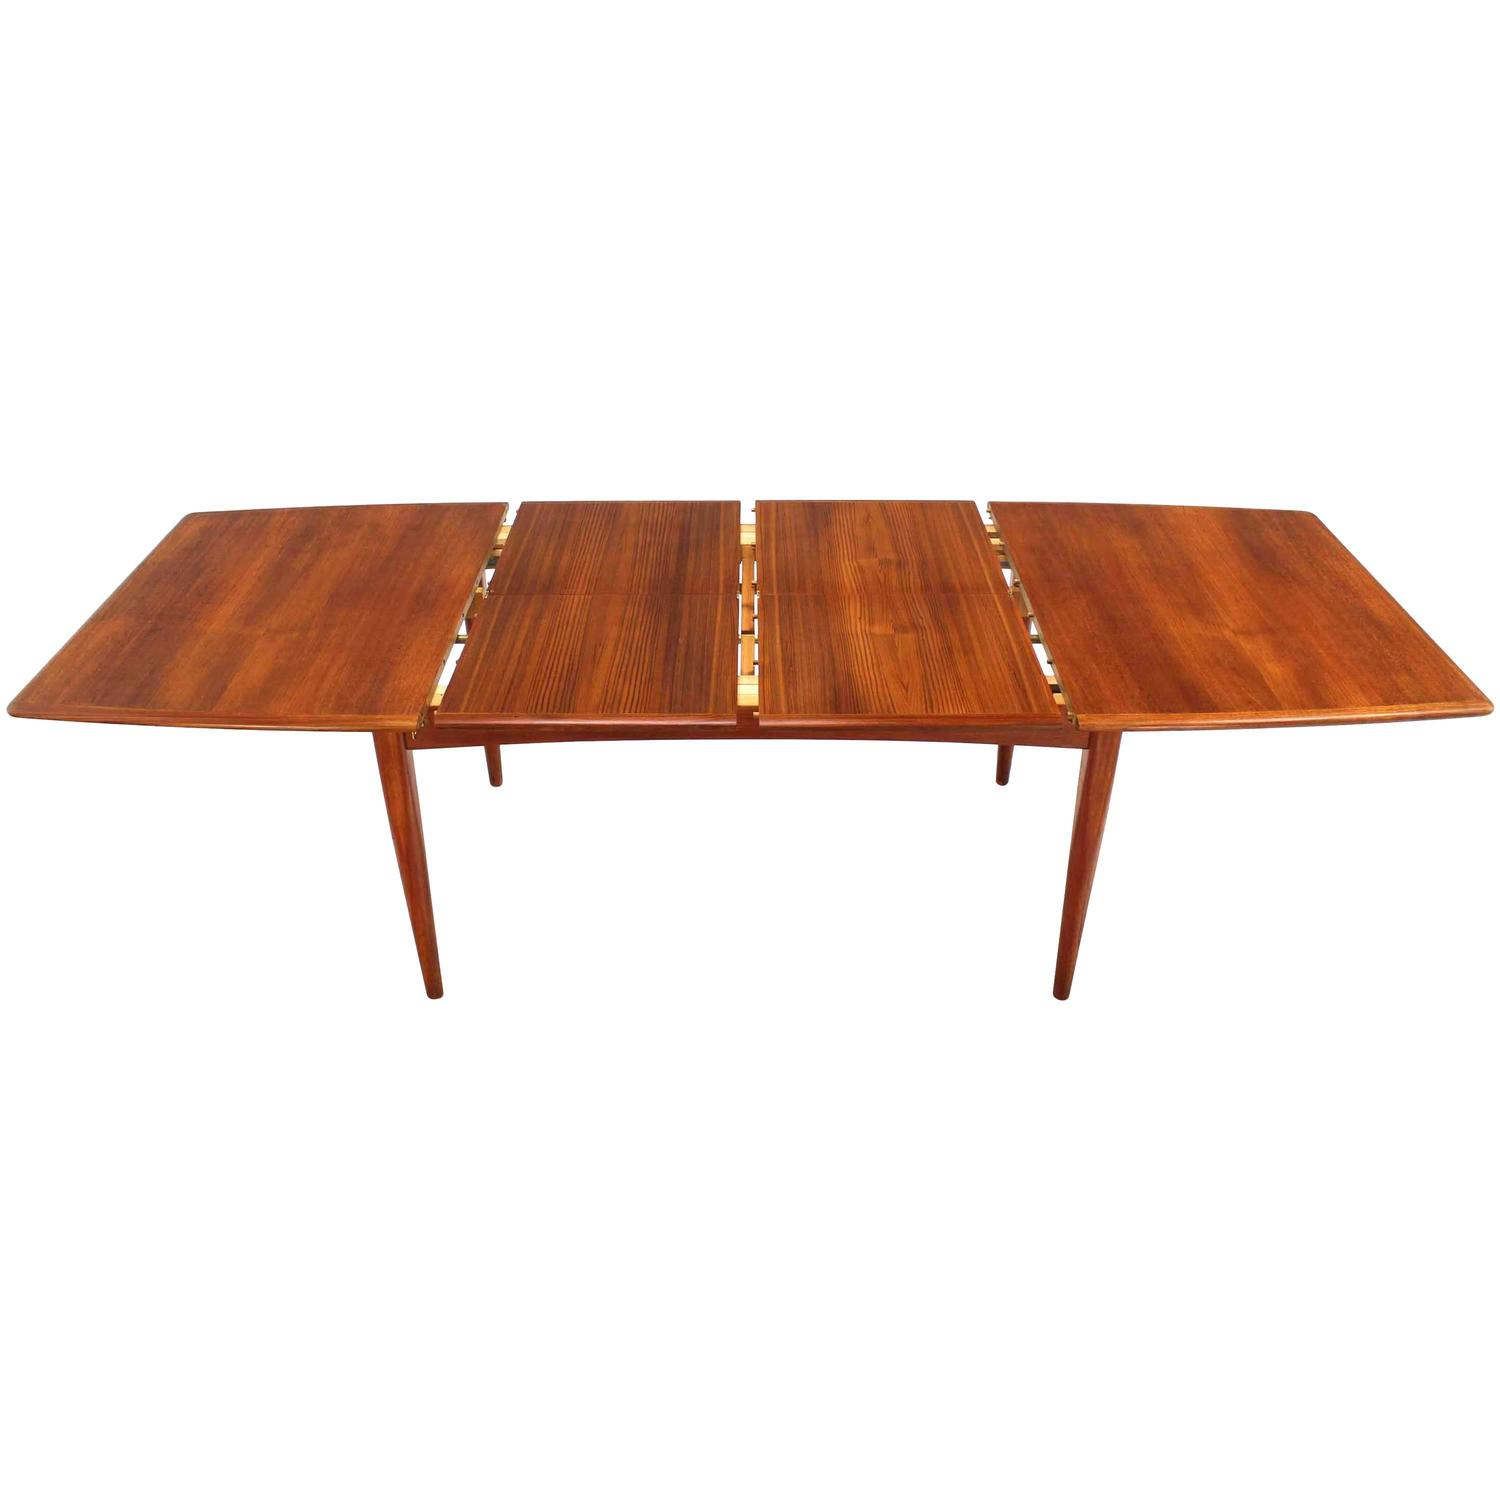 Danish Modern Teak Boat Shape Dining Table with Two Pop Up Leafs